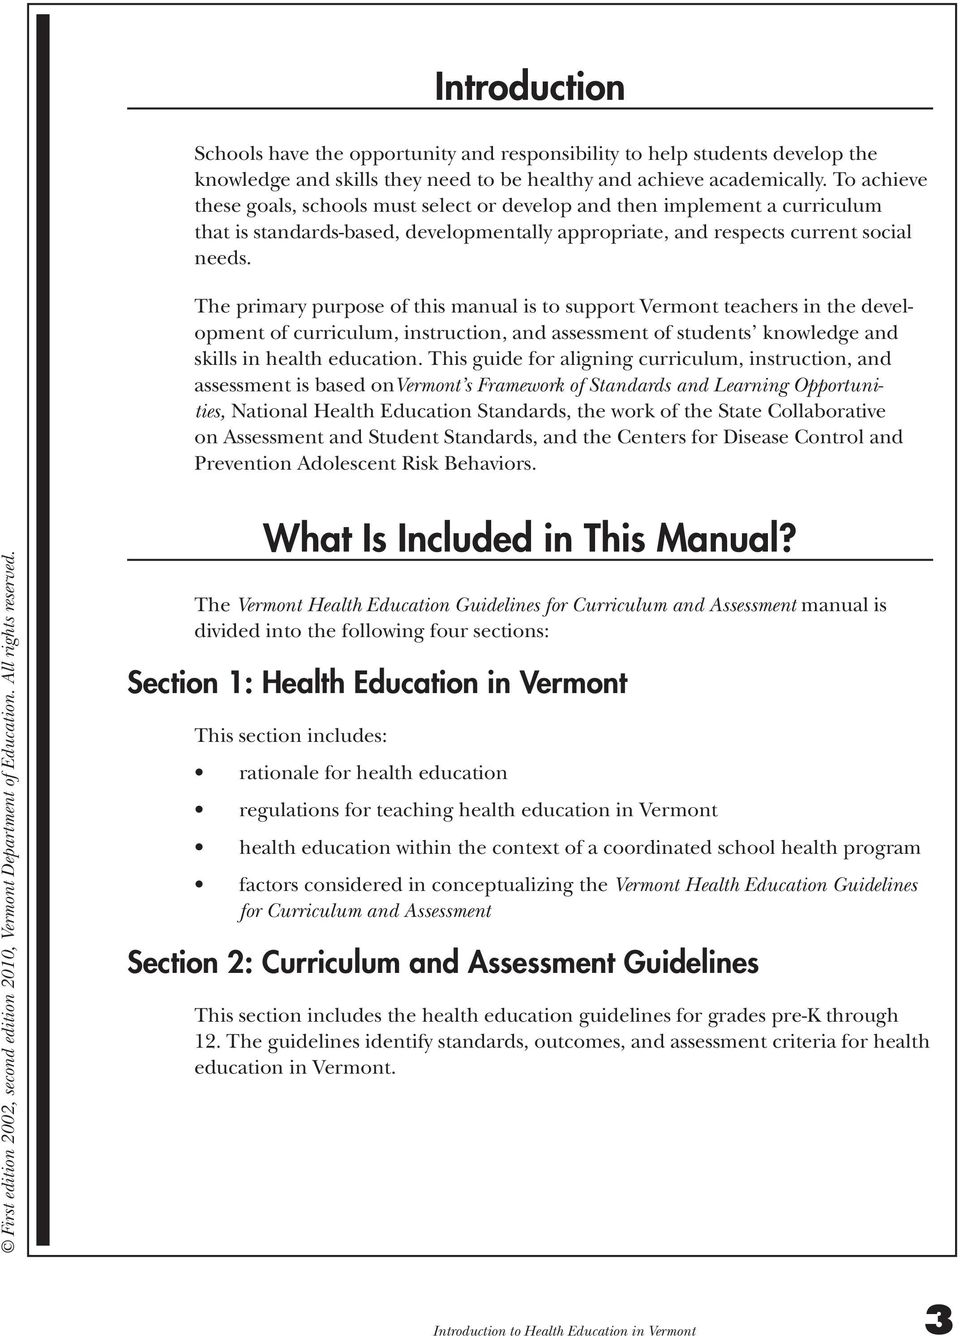 The primary purpose of this manual is to support Vermont teachers in the development of curriculum, instruction, and assessment of students knowledge and skills in health education.